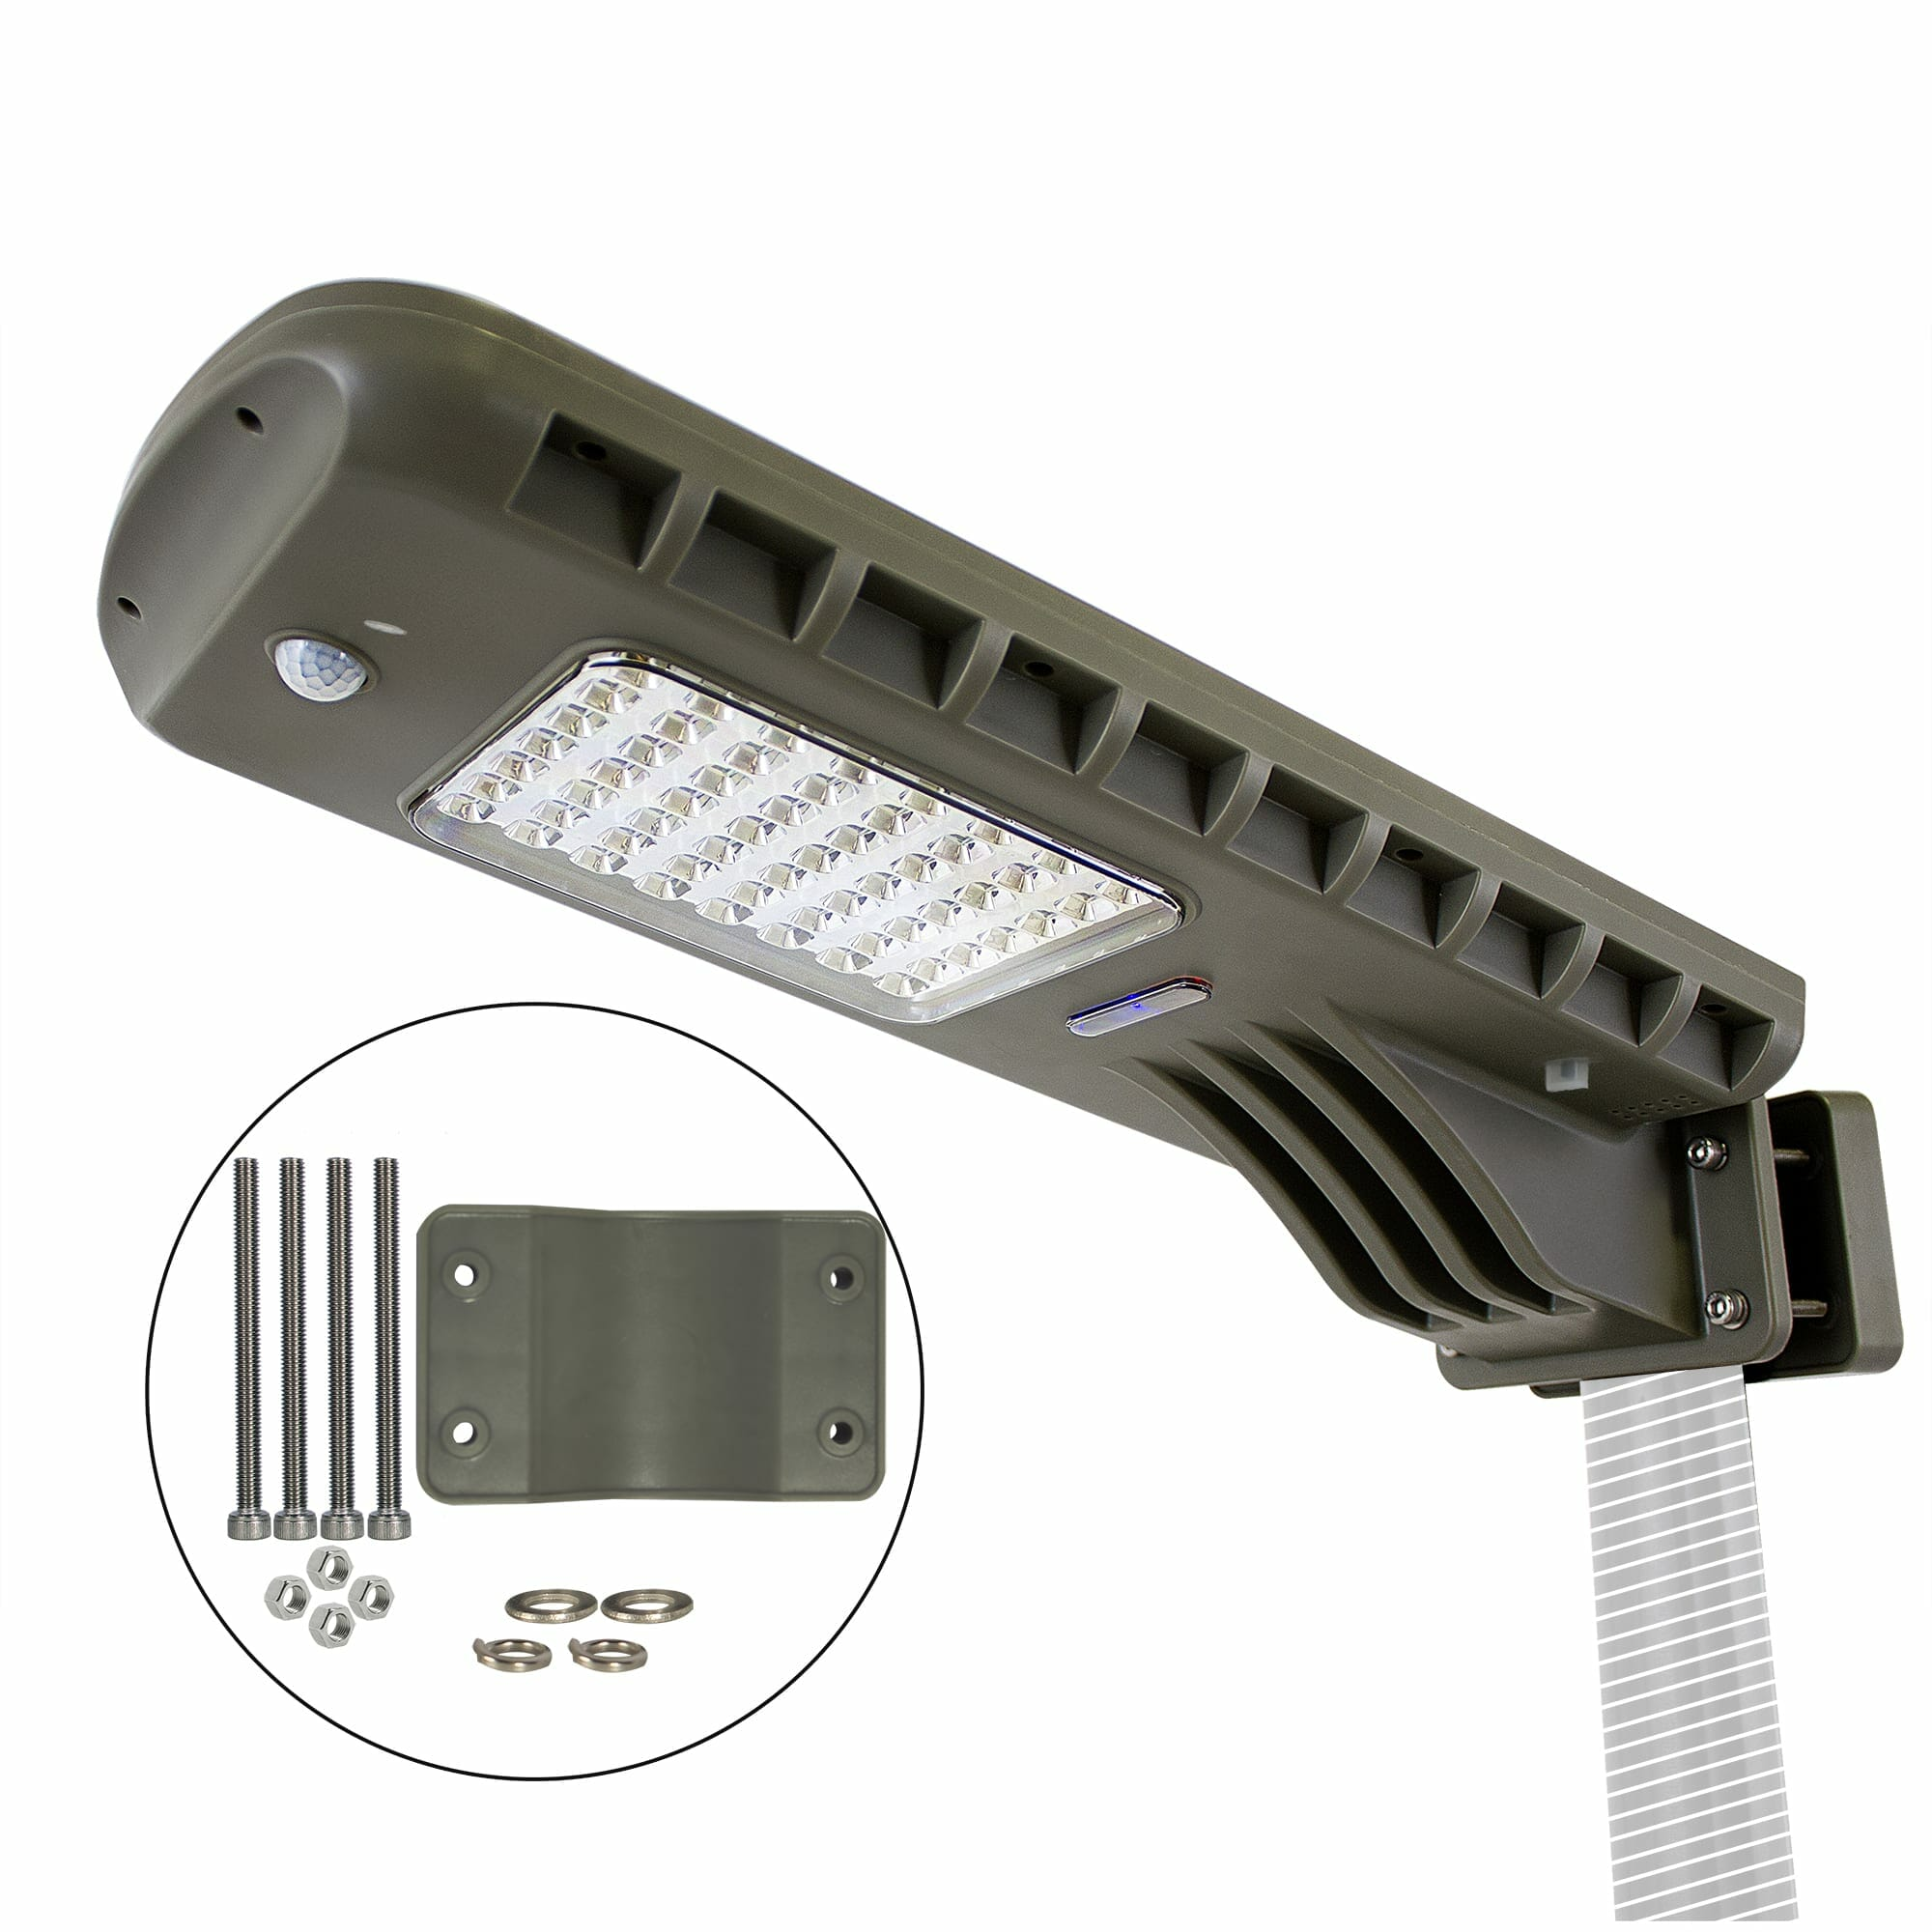 12W Solar Area Light With Motion Sensing and Timer 201iS60822